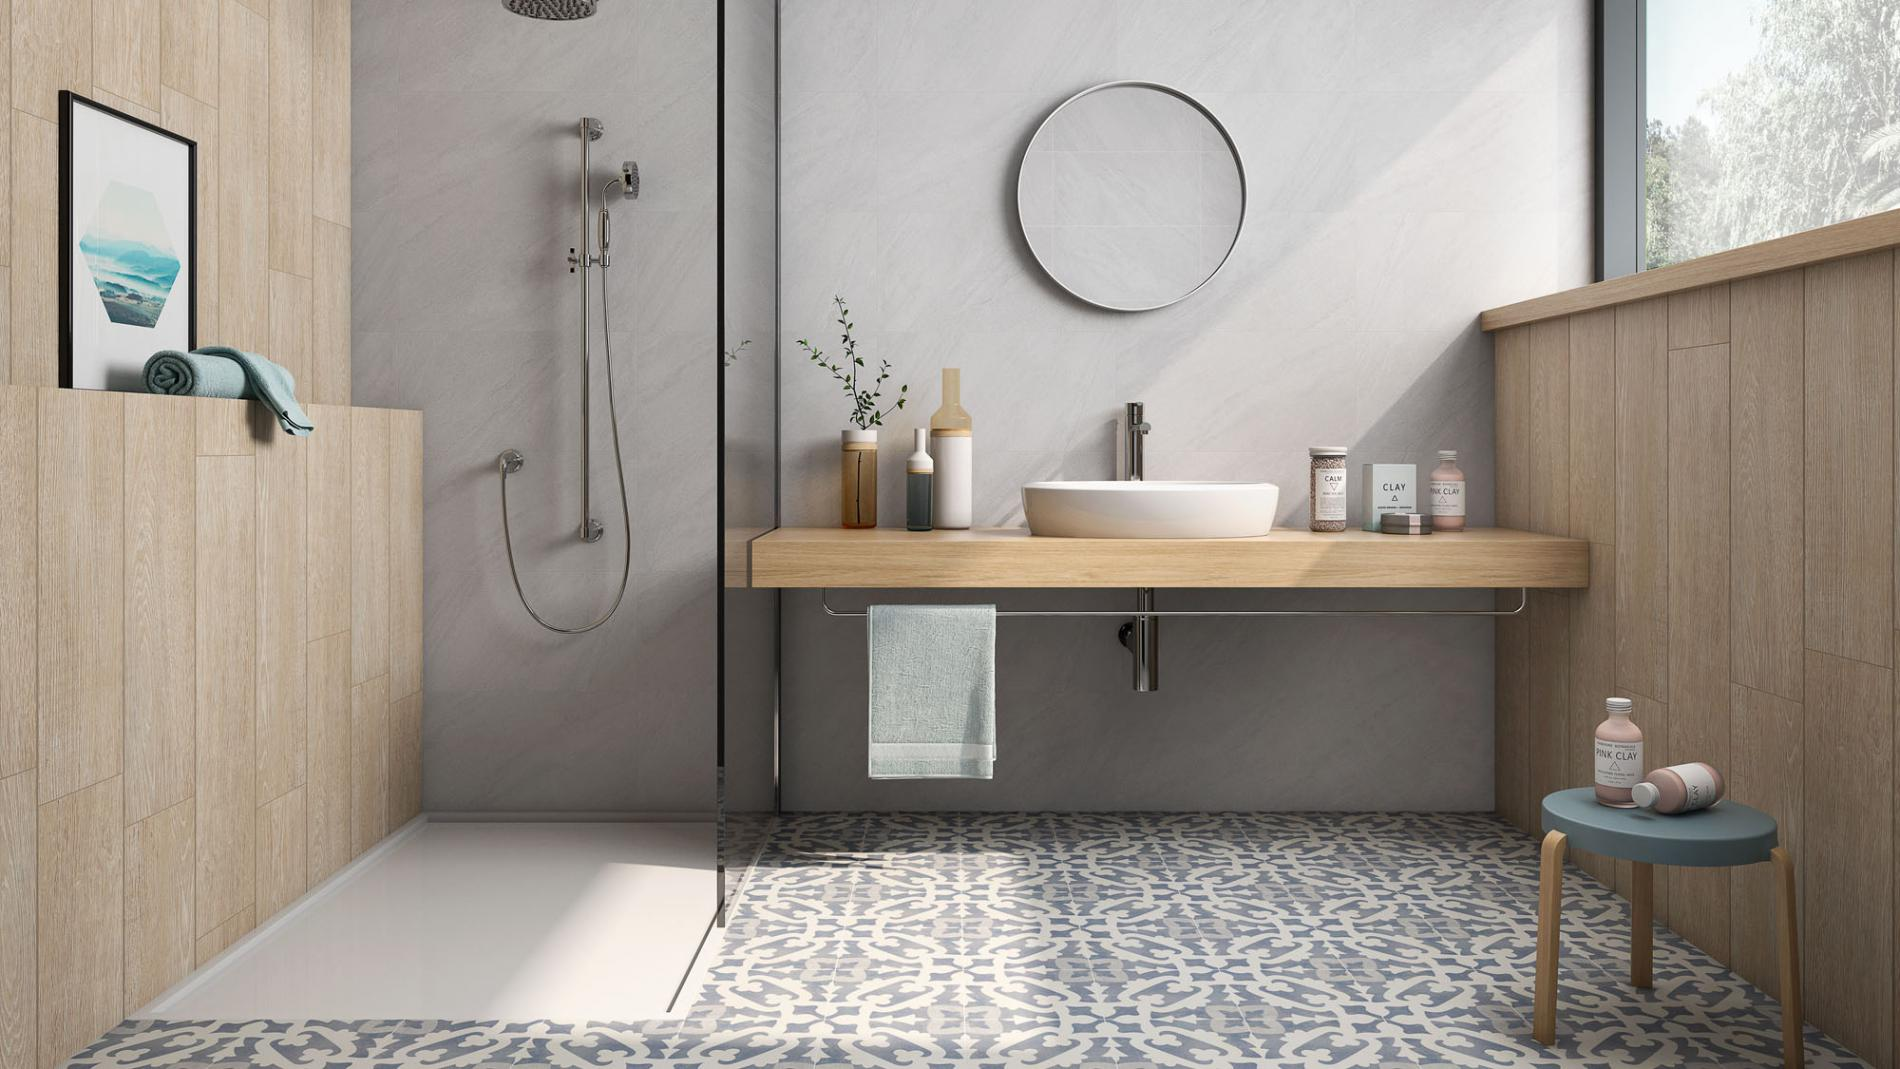 pam1900x56 Tiles dublin waterloo bathrooms commercial contracts ireland supply and fit luxury.jpg